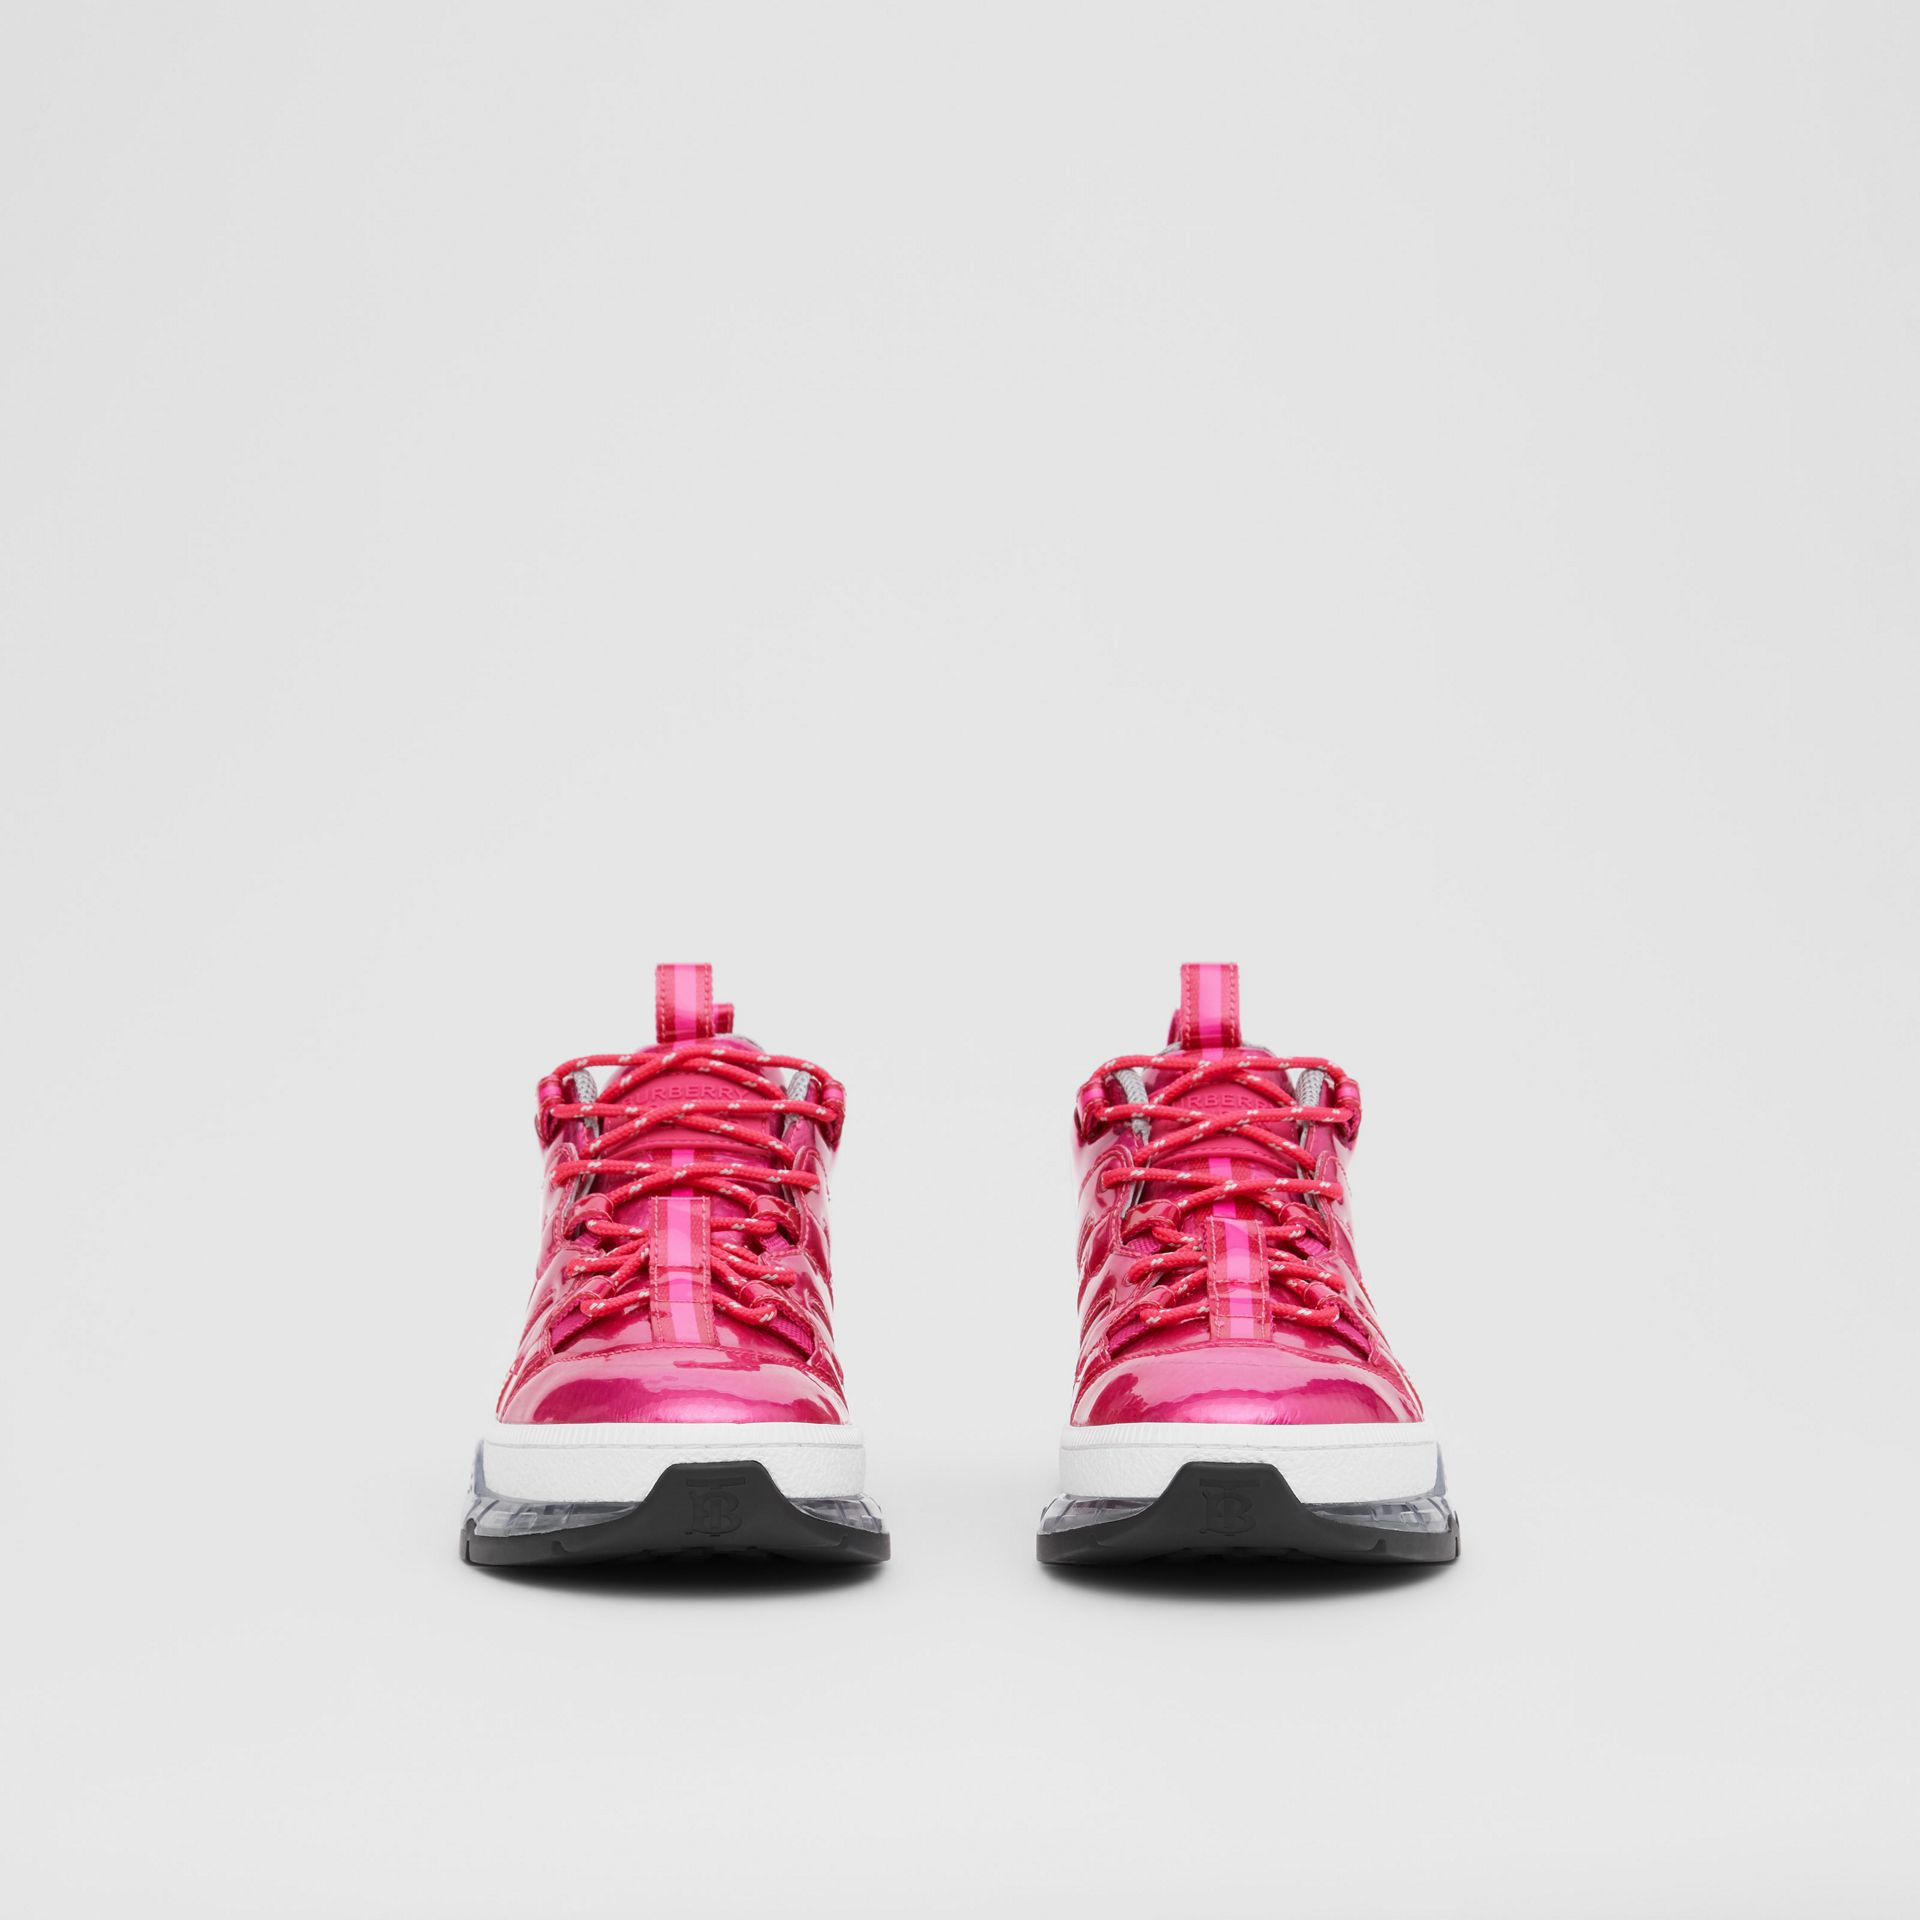 Vinyl and Nylon Union Sneakers in Fuchsia - Women | Burberry - gallery image 2